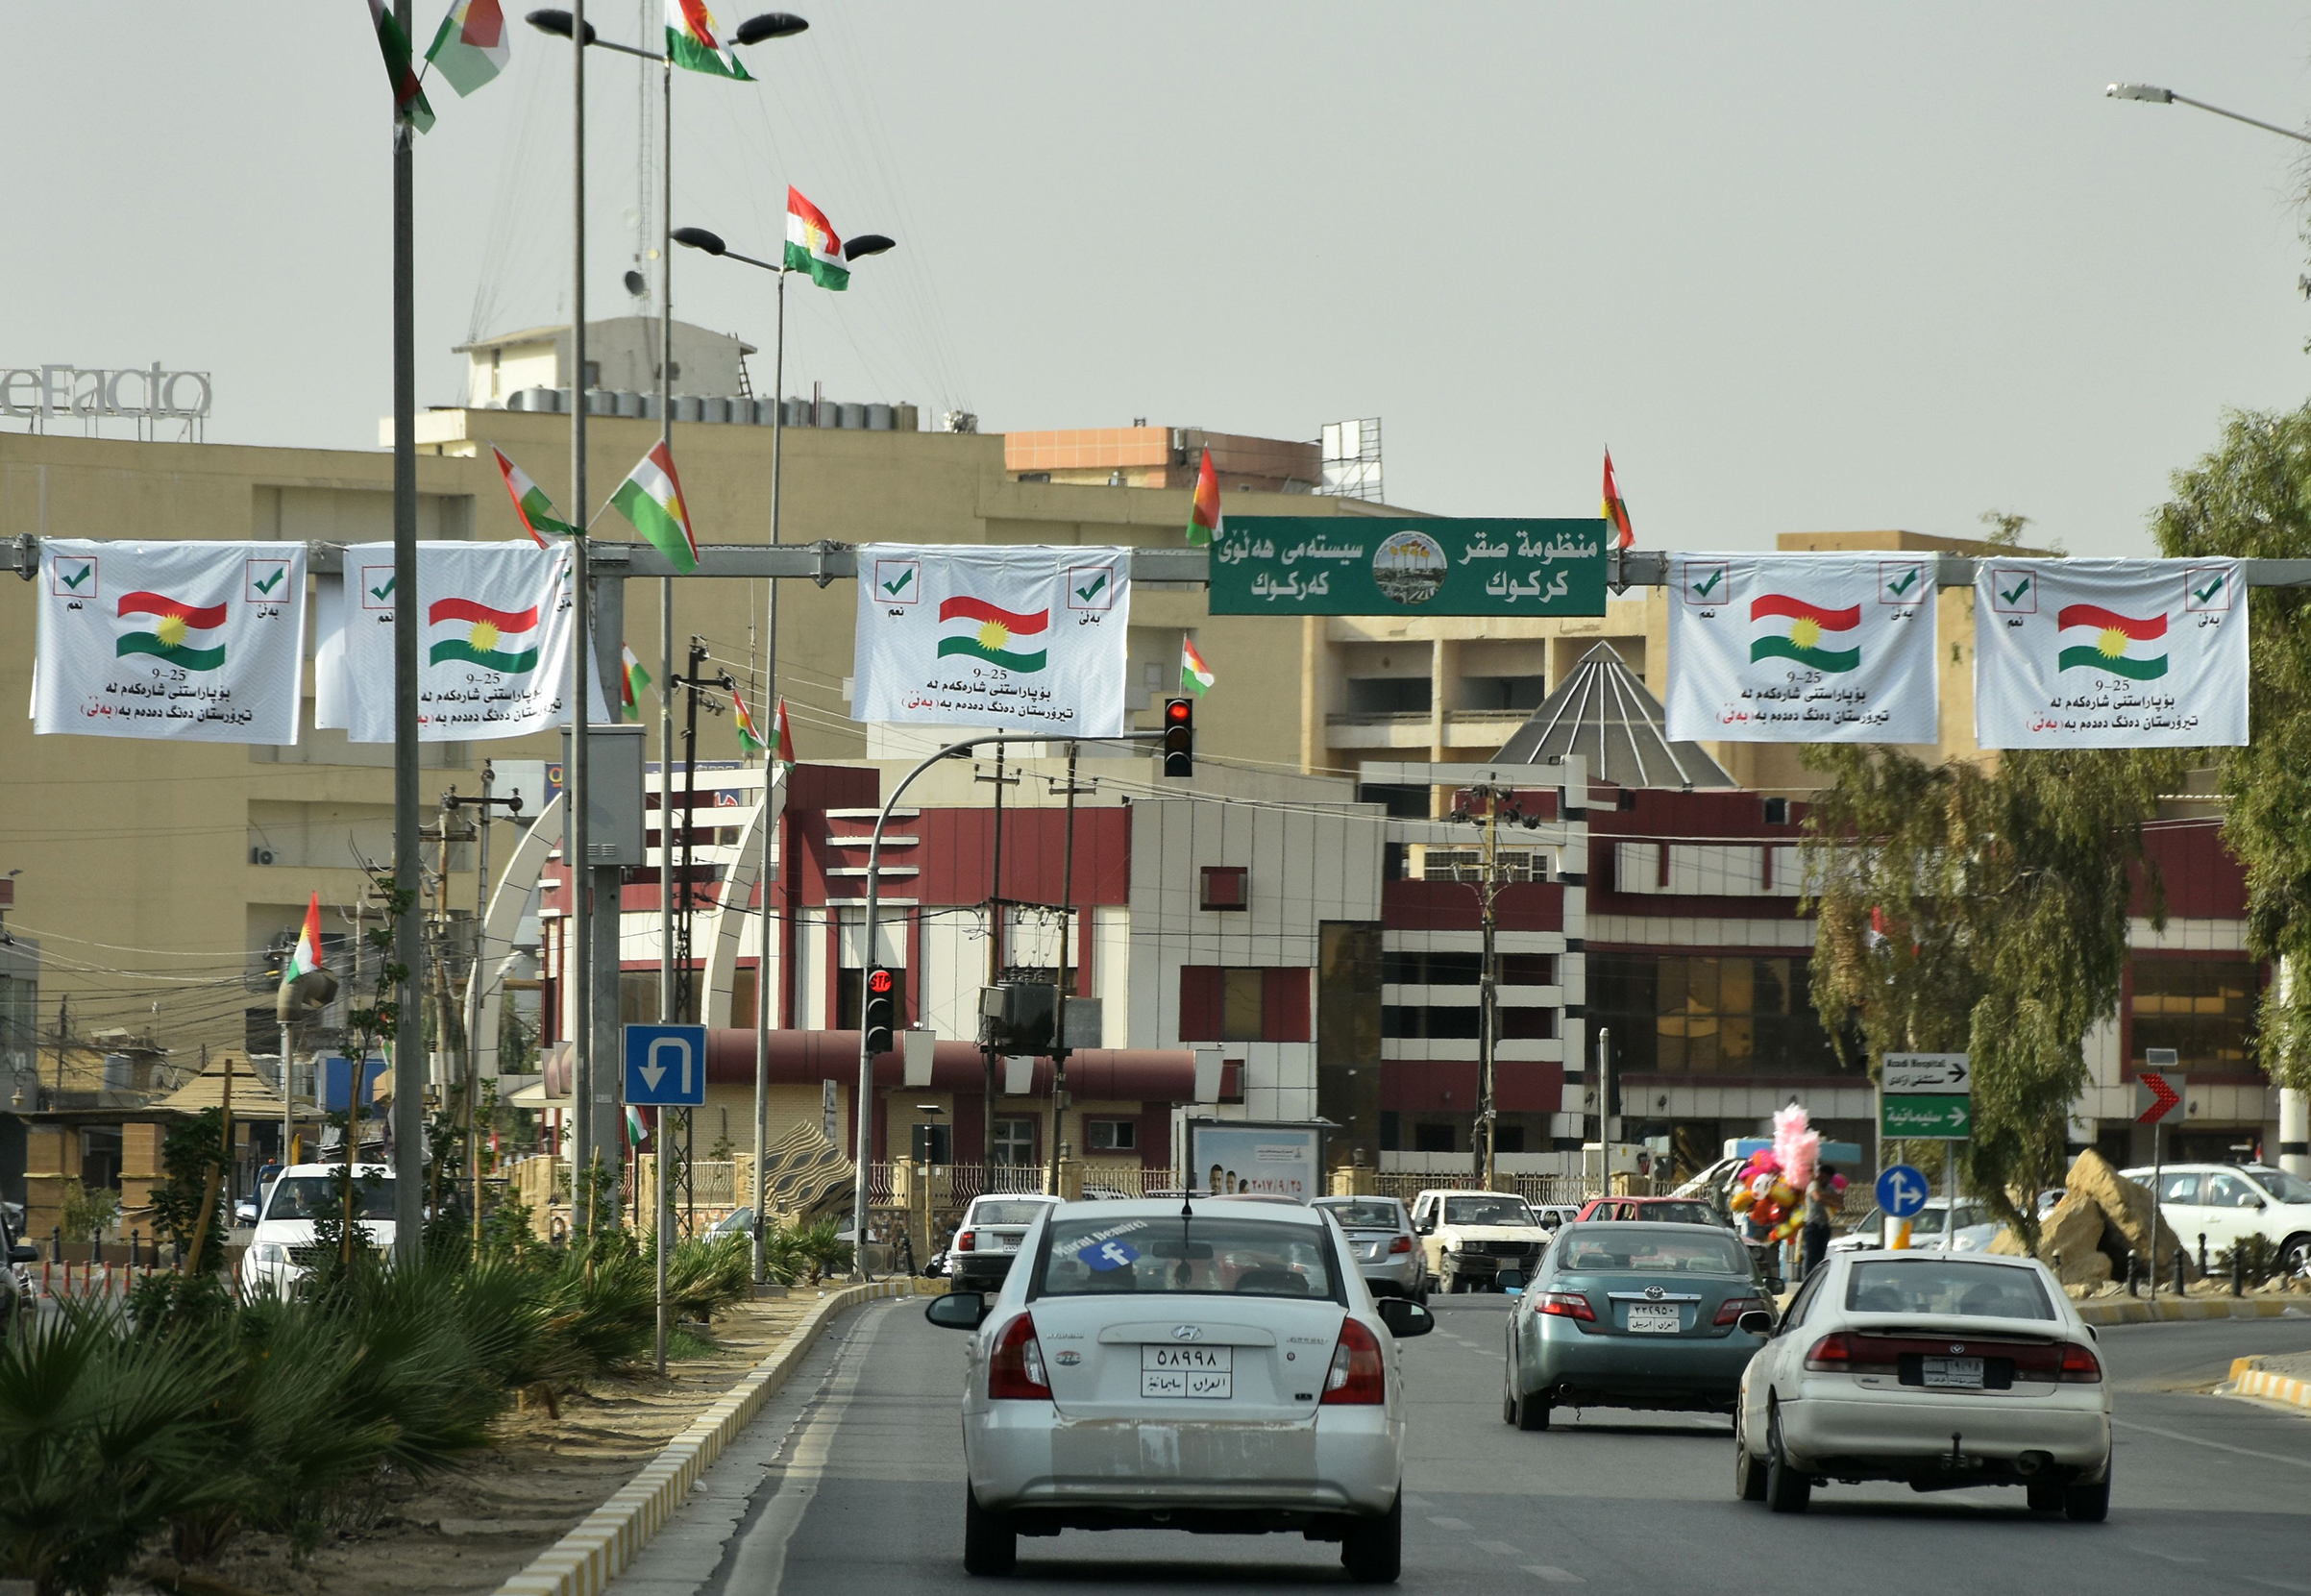 Posters encouraging people to vote in the upcoming independence referendum are seen in central Kirkuk on Sept. 21, 2017.